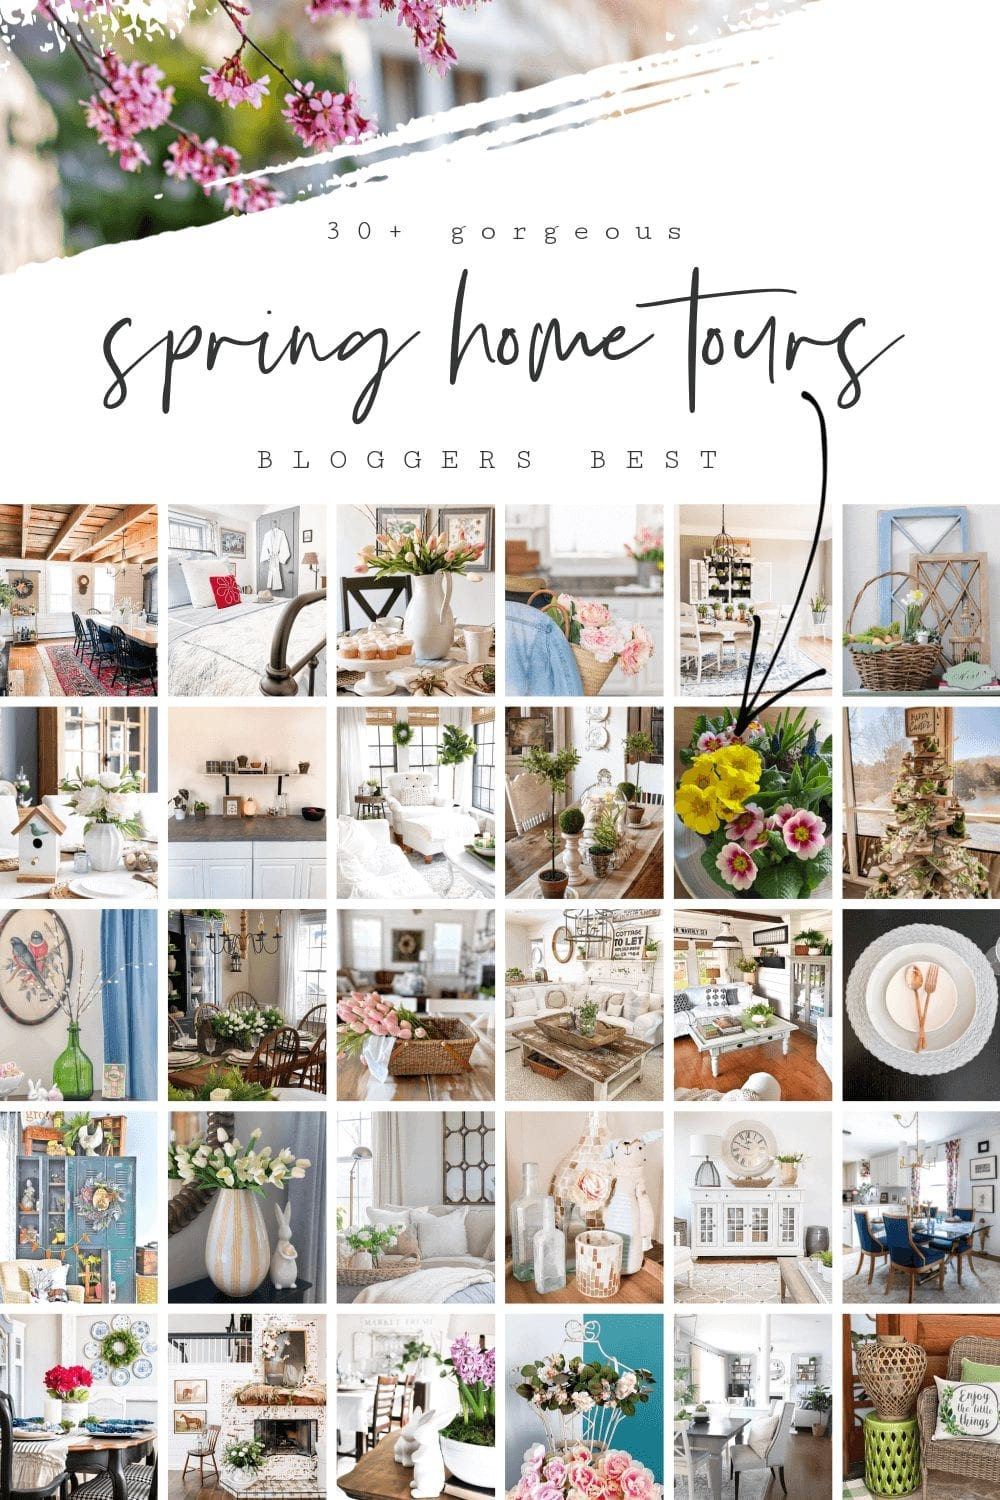 Check out the Bloggers Best SPring Home Tours featuring over 30 of your favorite home décor bloggers homes!